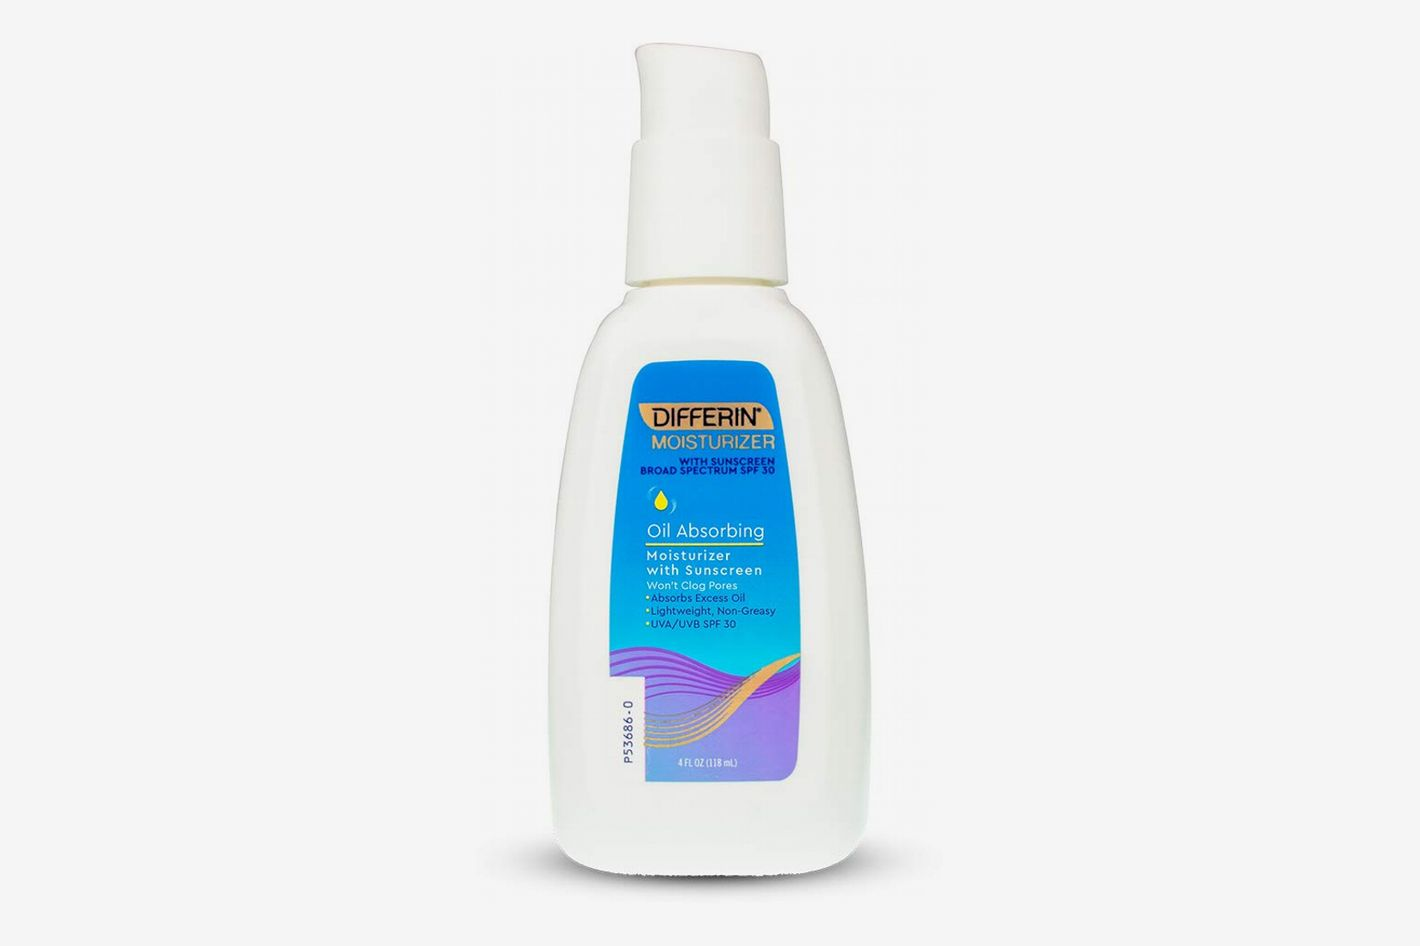 Differin Oil Absorbing Moisturizer with Sunscreen